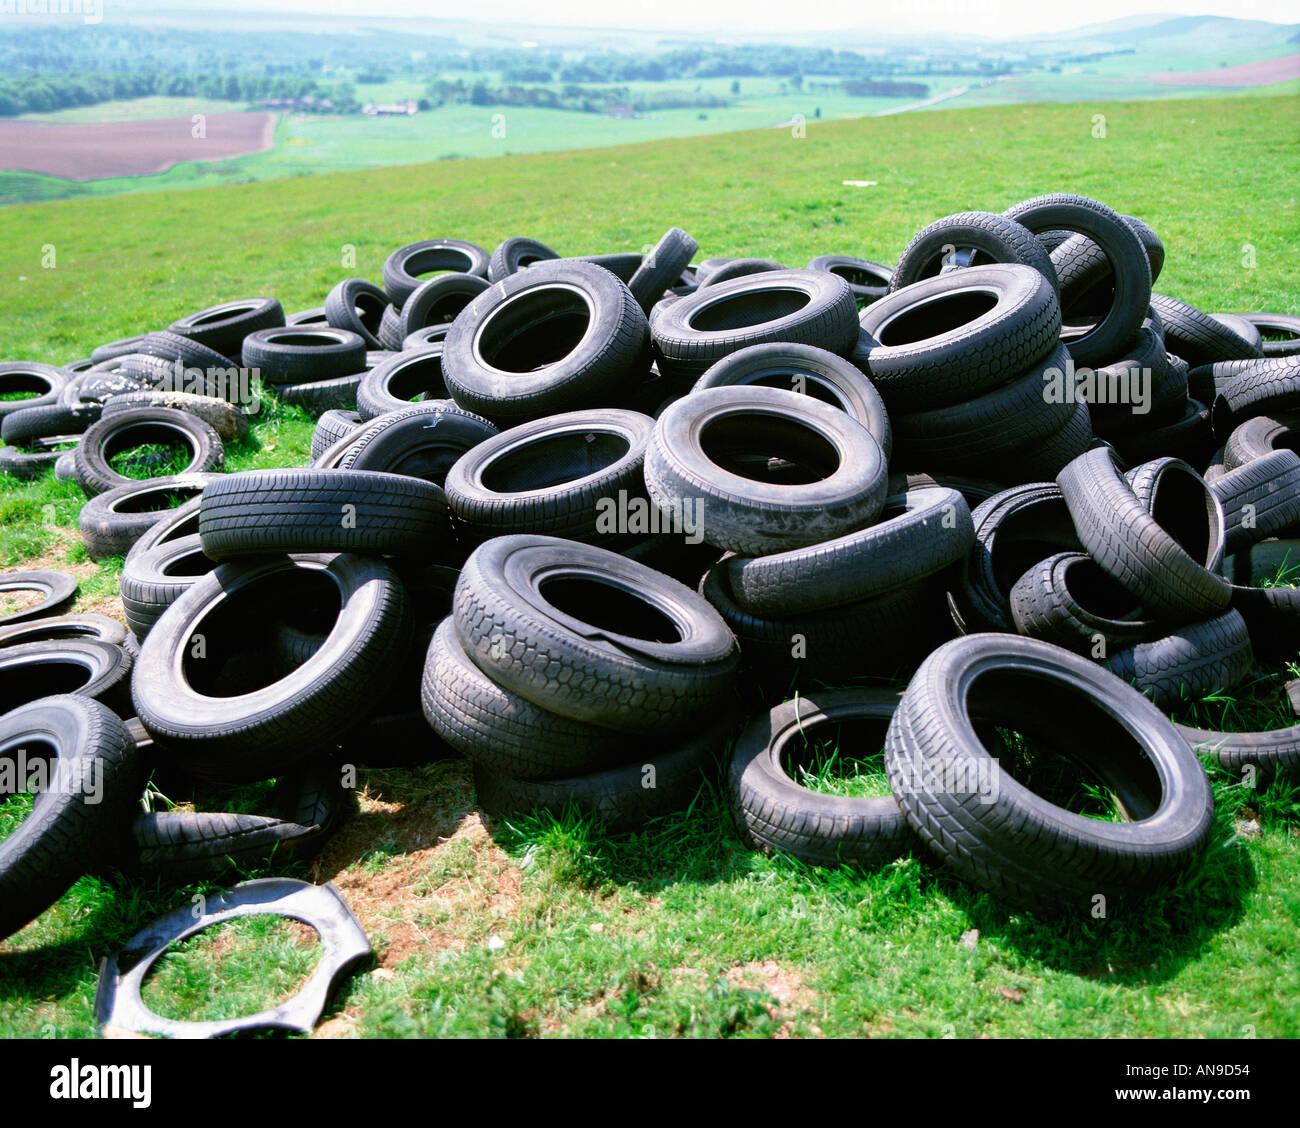 Tyres dumped in countryside - Stock Image